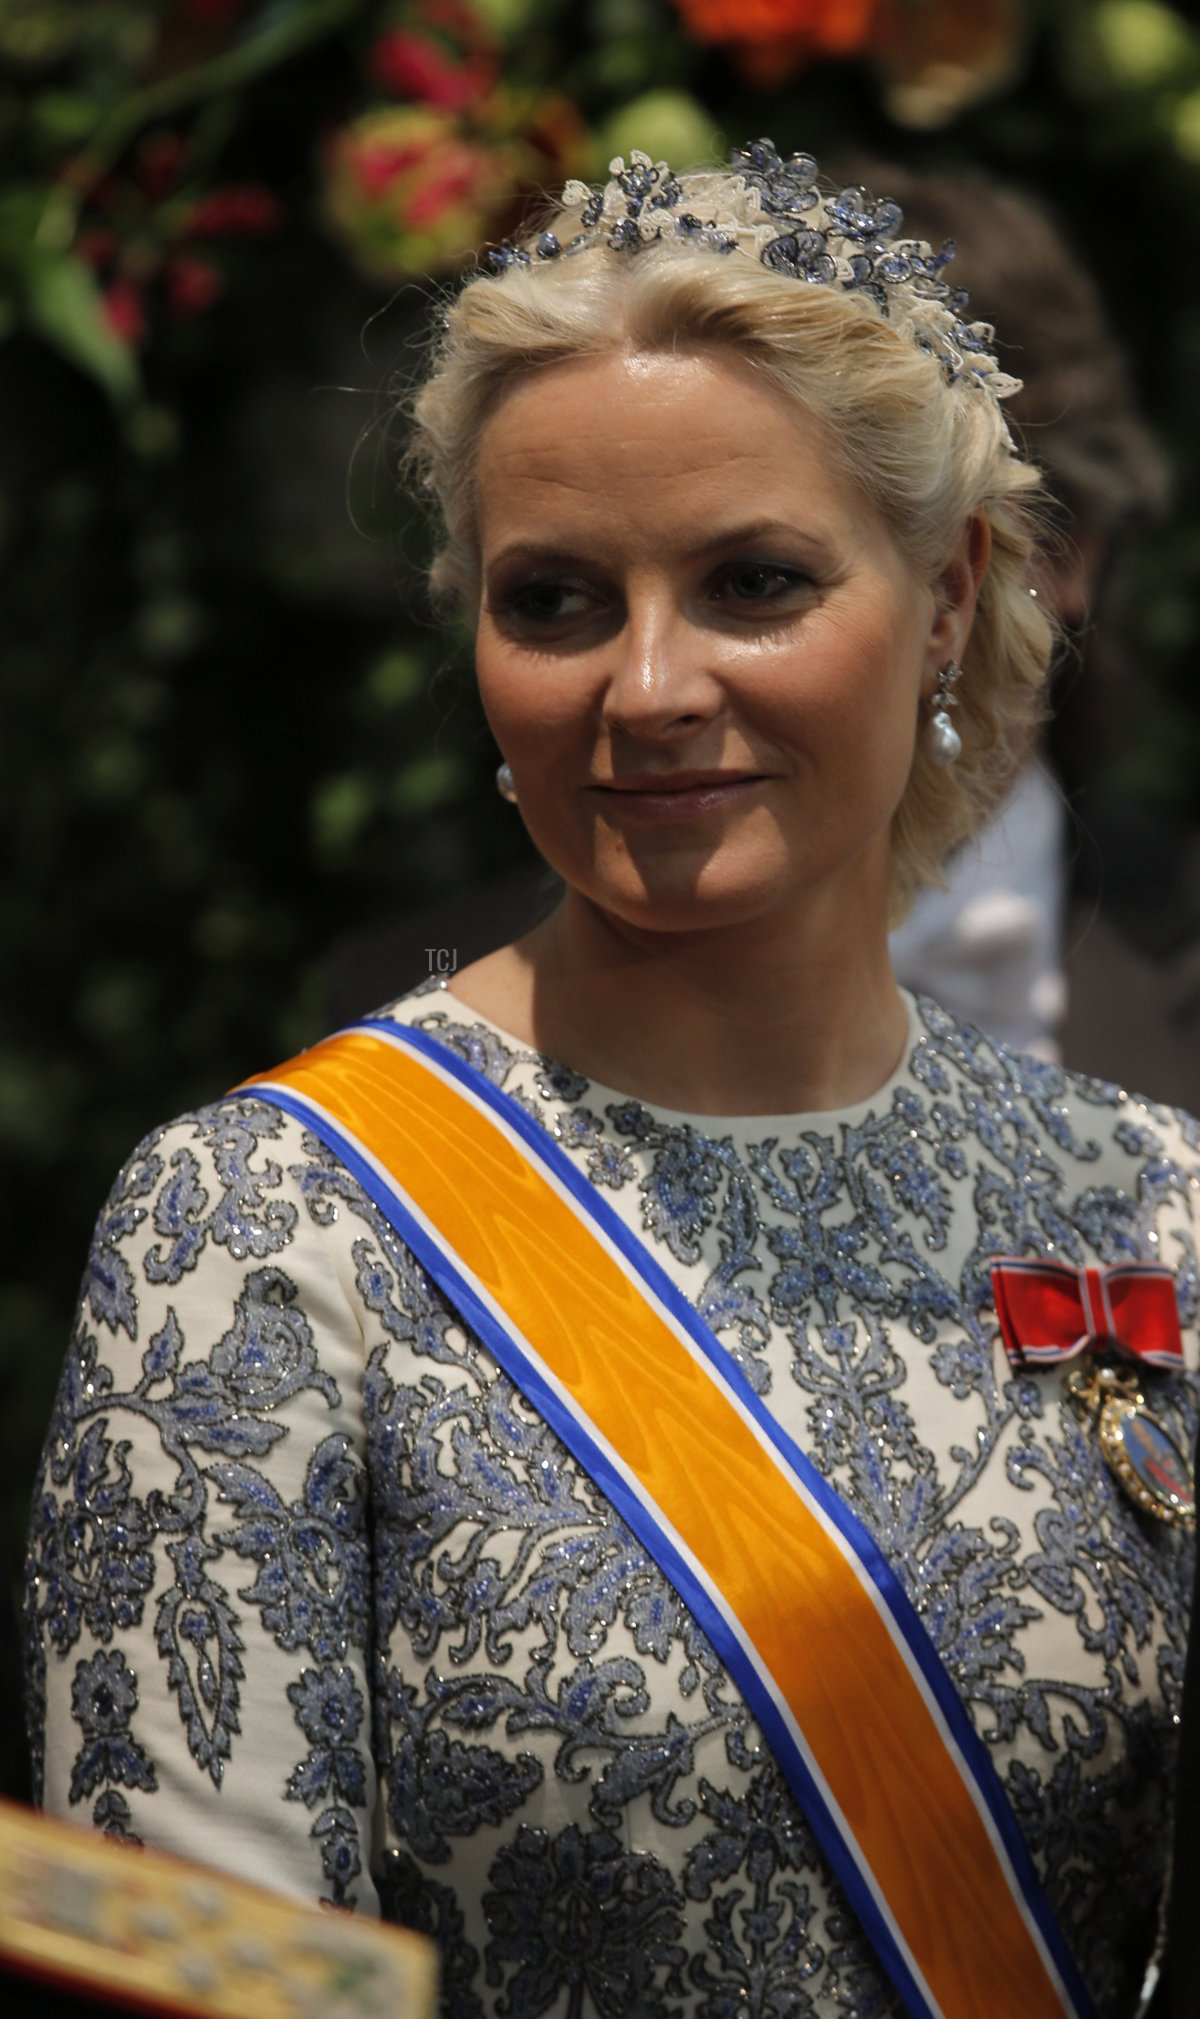 Crown Princess Mette-Marit of Norway attends the inauguration of HM King Willem Alexander of the Netherlands and HRH Princess Beatrix of the Netherlands at New Church on April 30, 2013 in Amsterdam